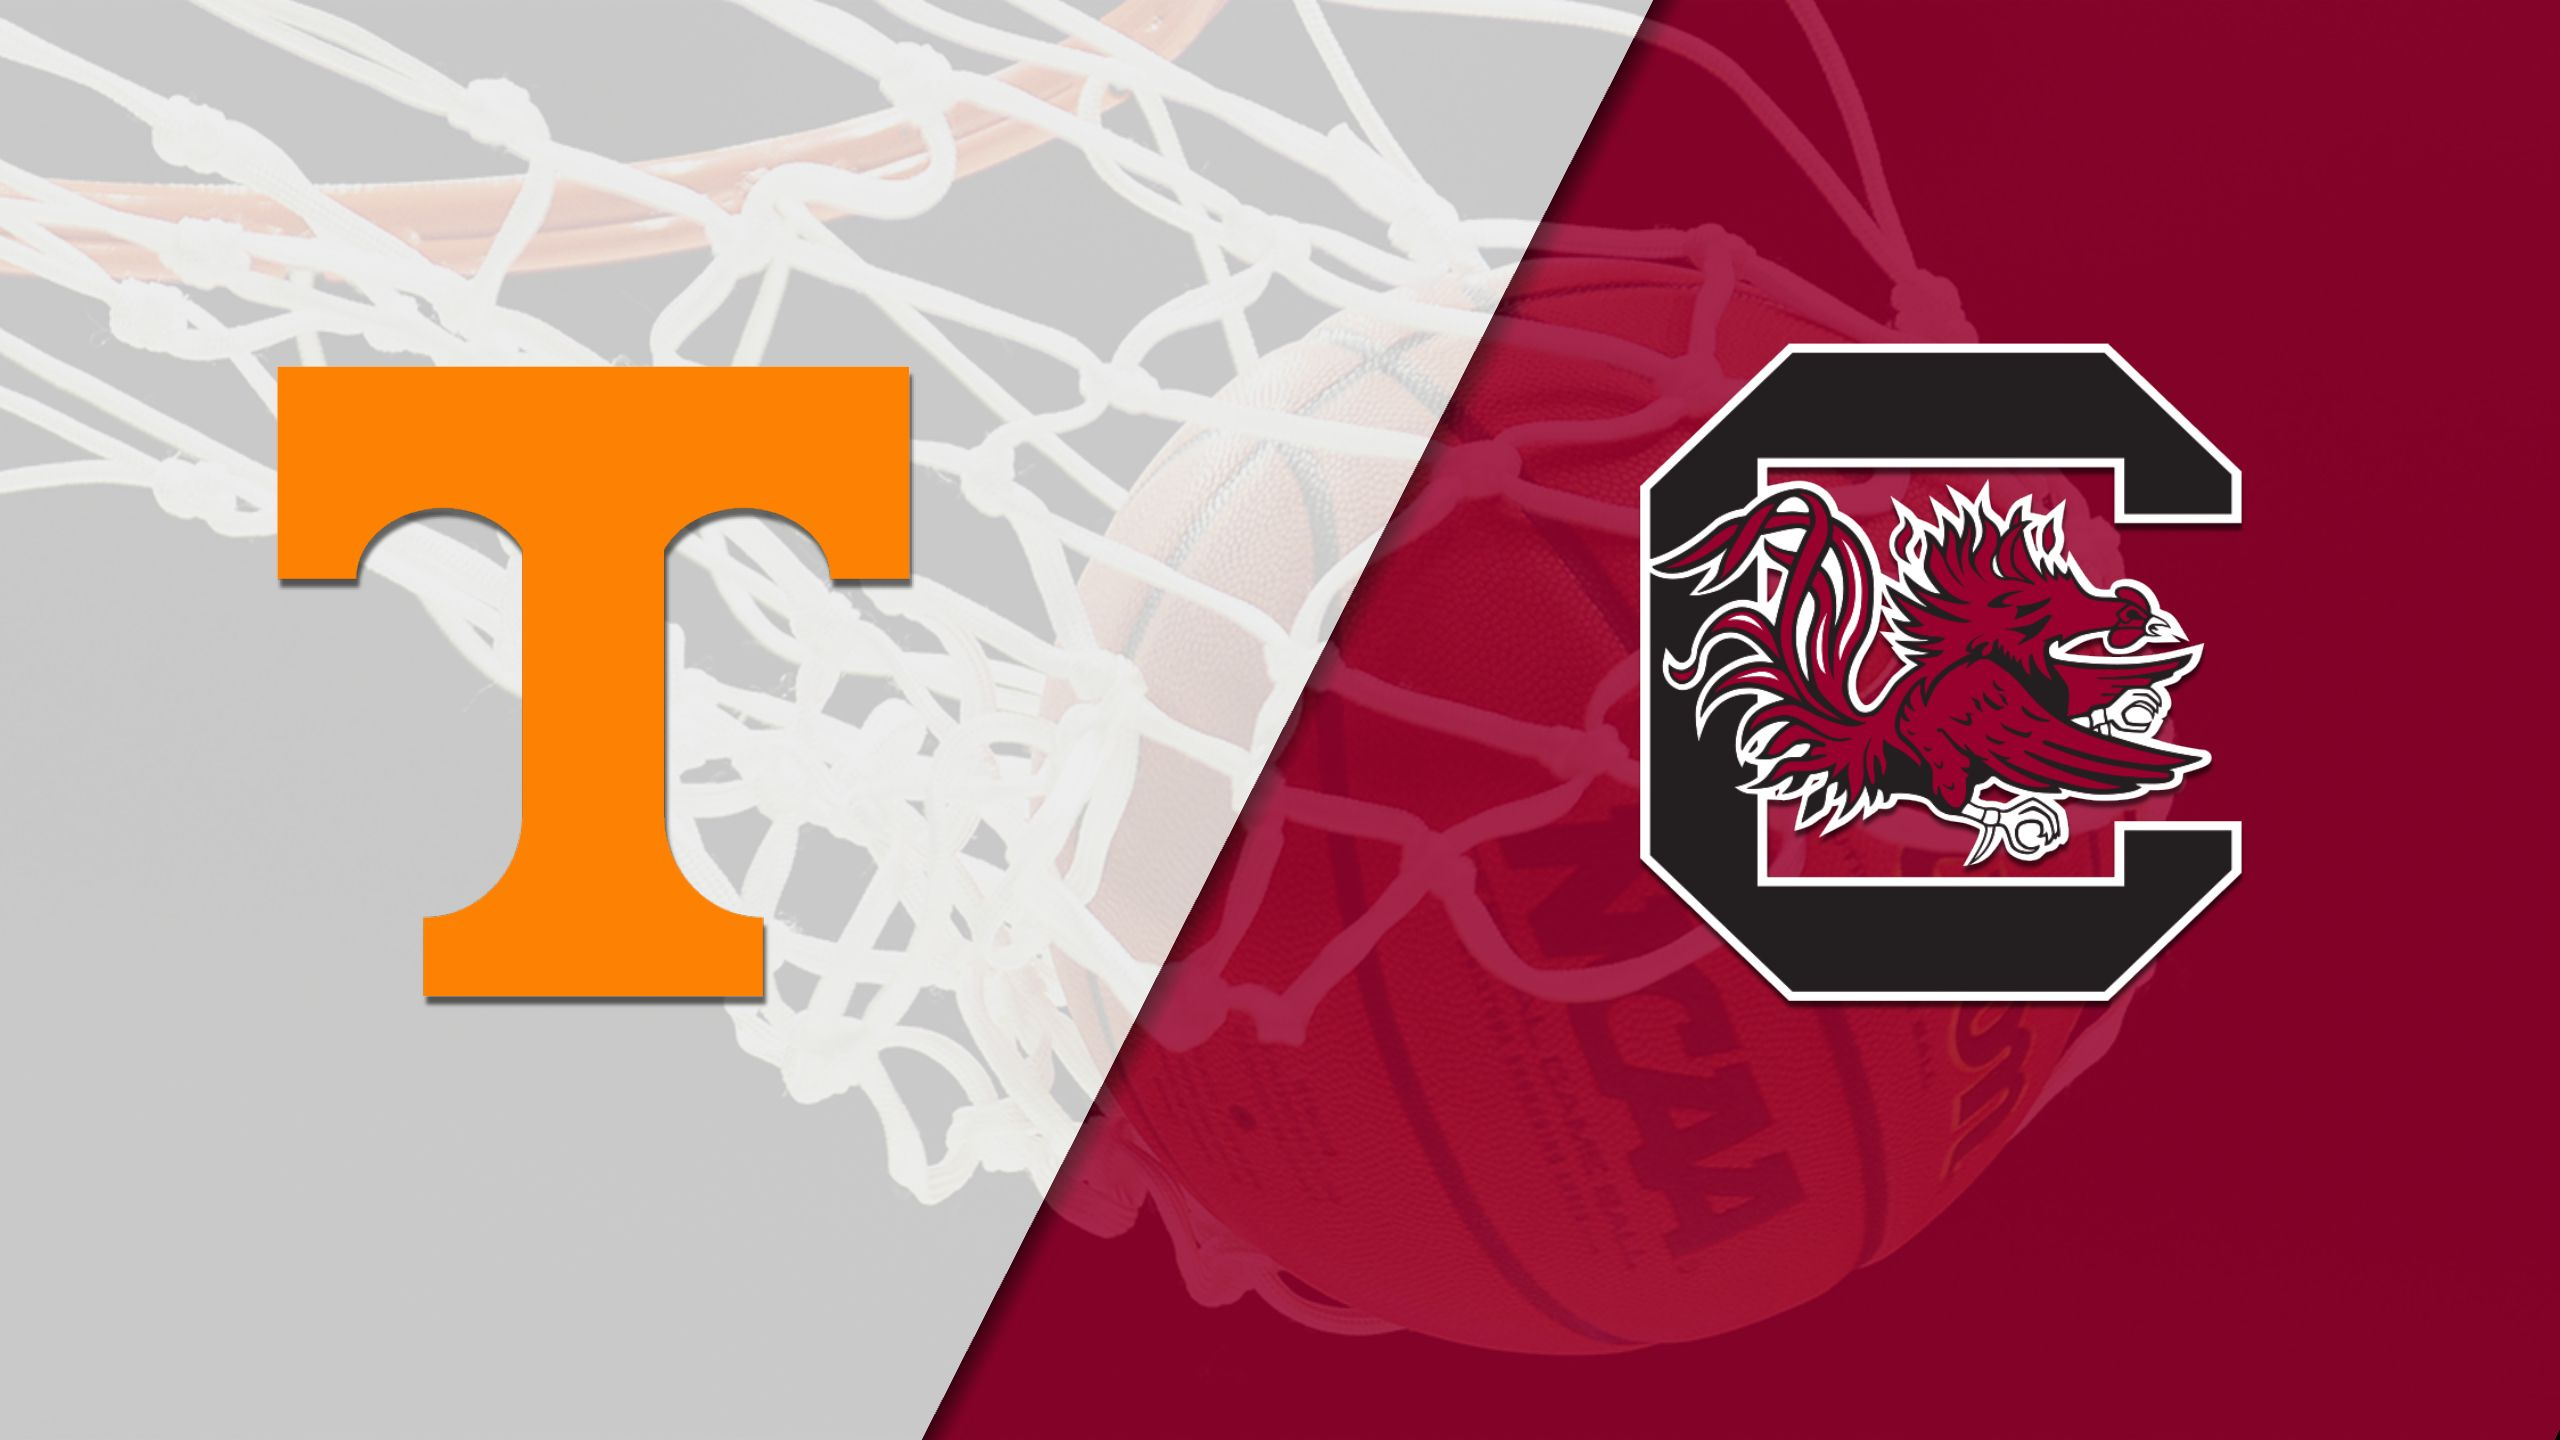 #21 Tennessee vs. South Carolina (M Basketball) (re-air)